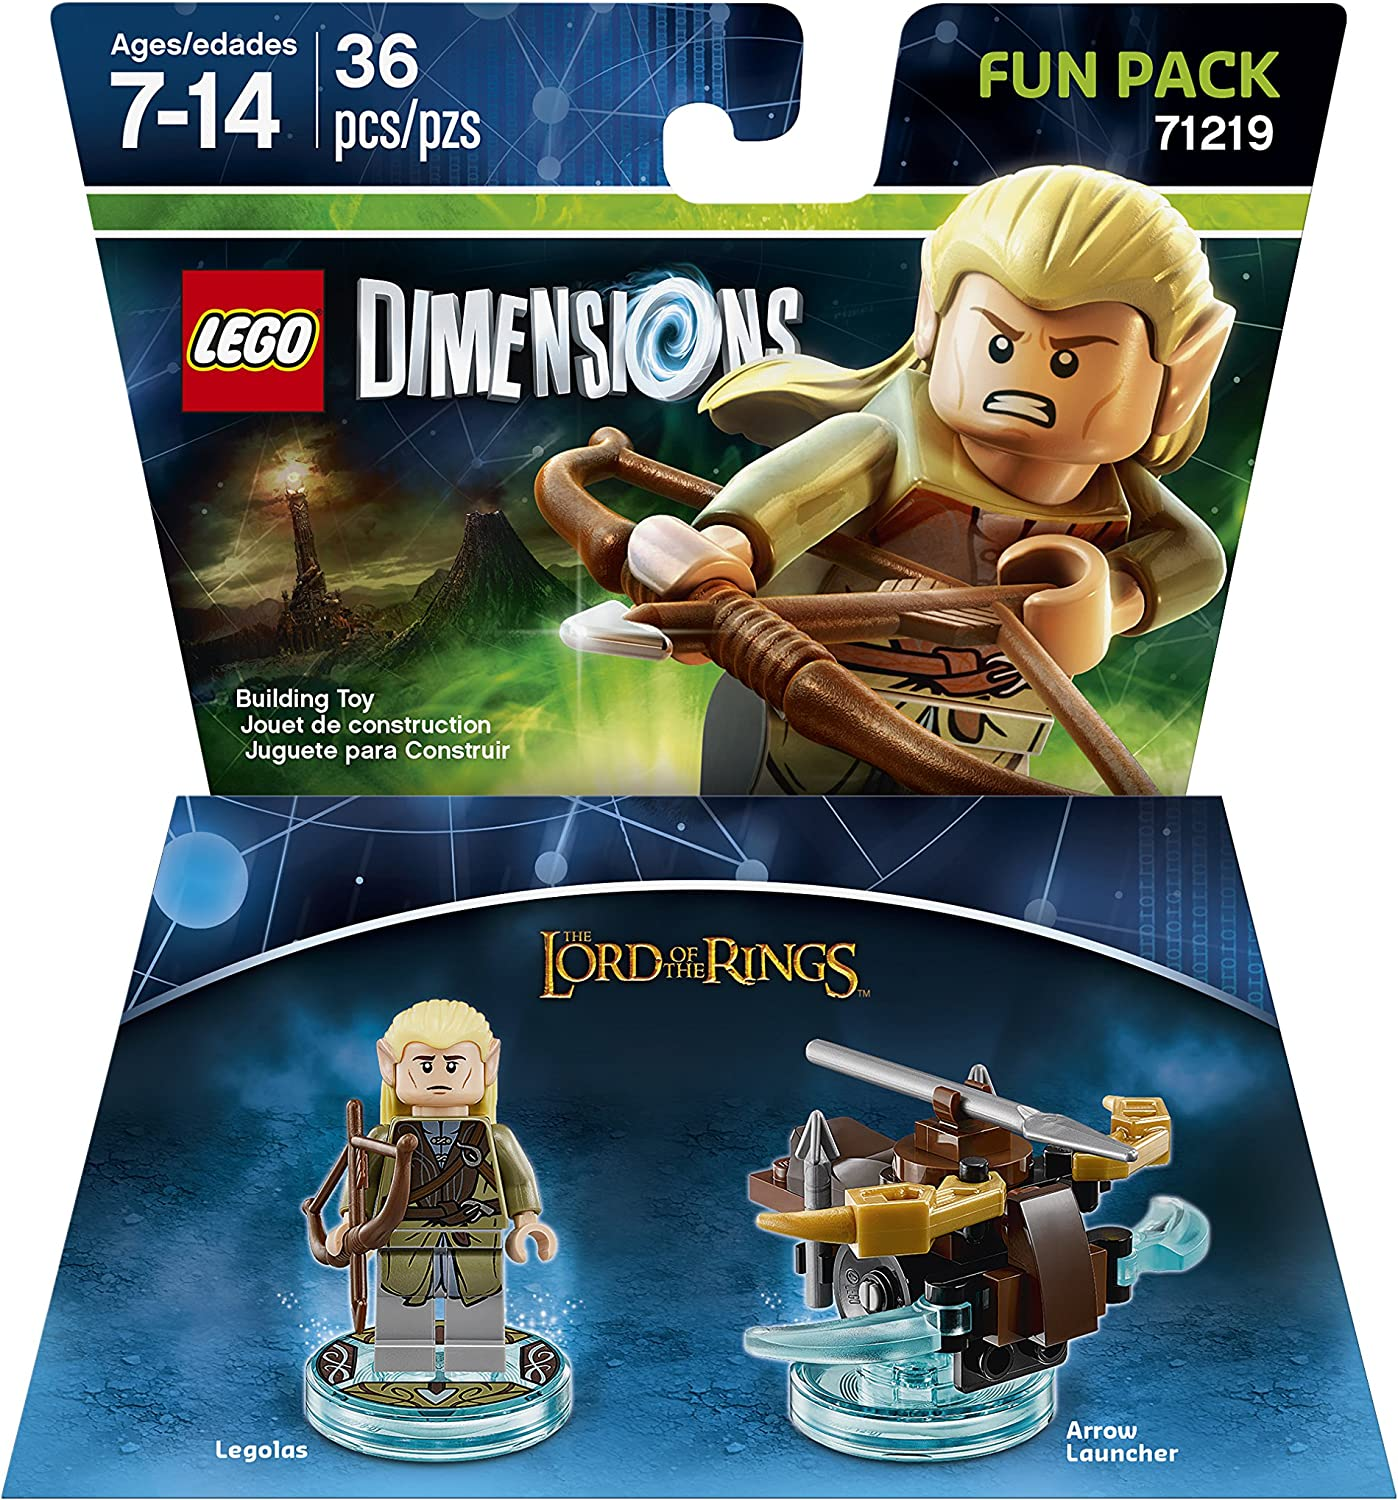 Lord Of The Rings Legolas Fun Pack - LEGO Dimensions by Warner Home Video - Games: Amazon.es: Juguetes y juegos